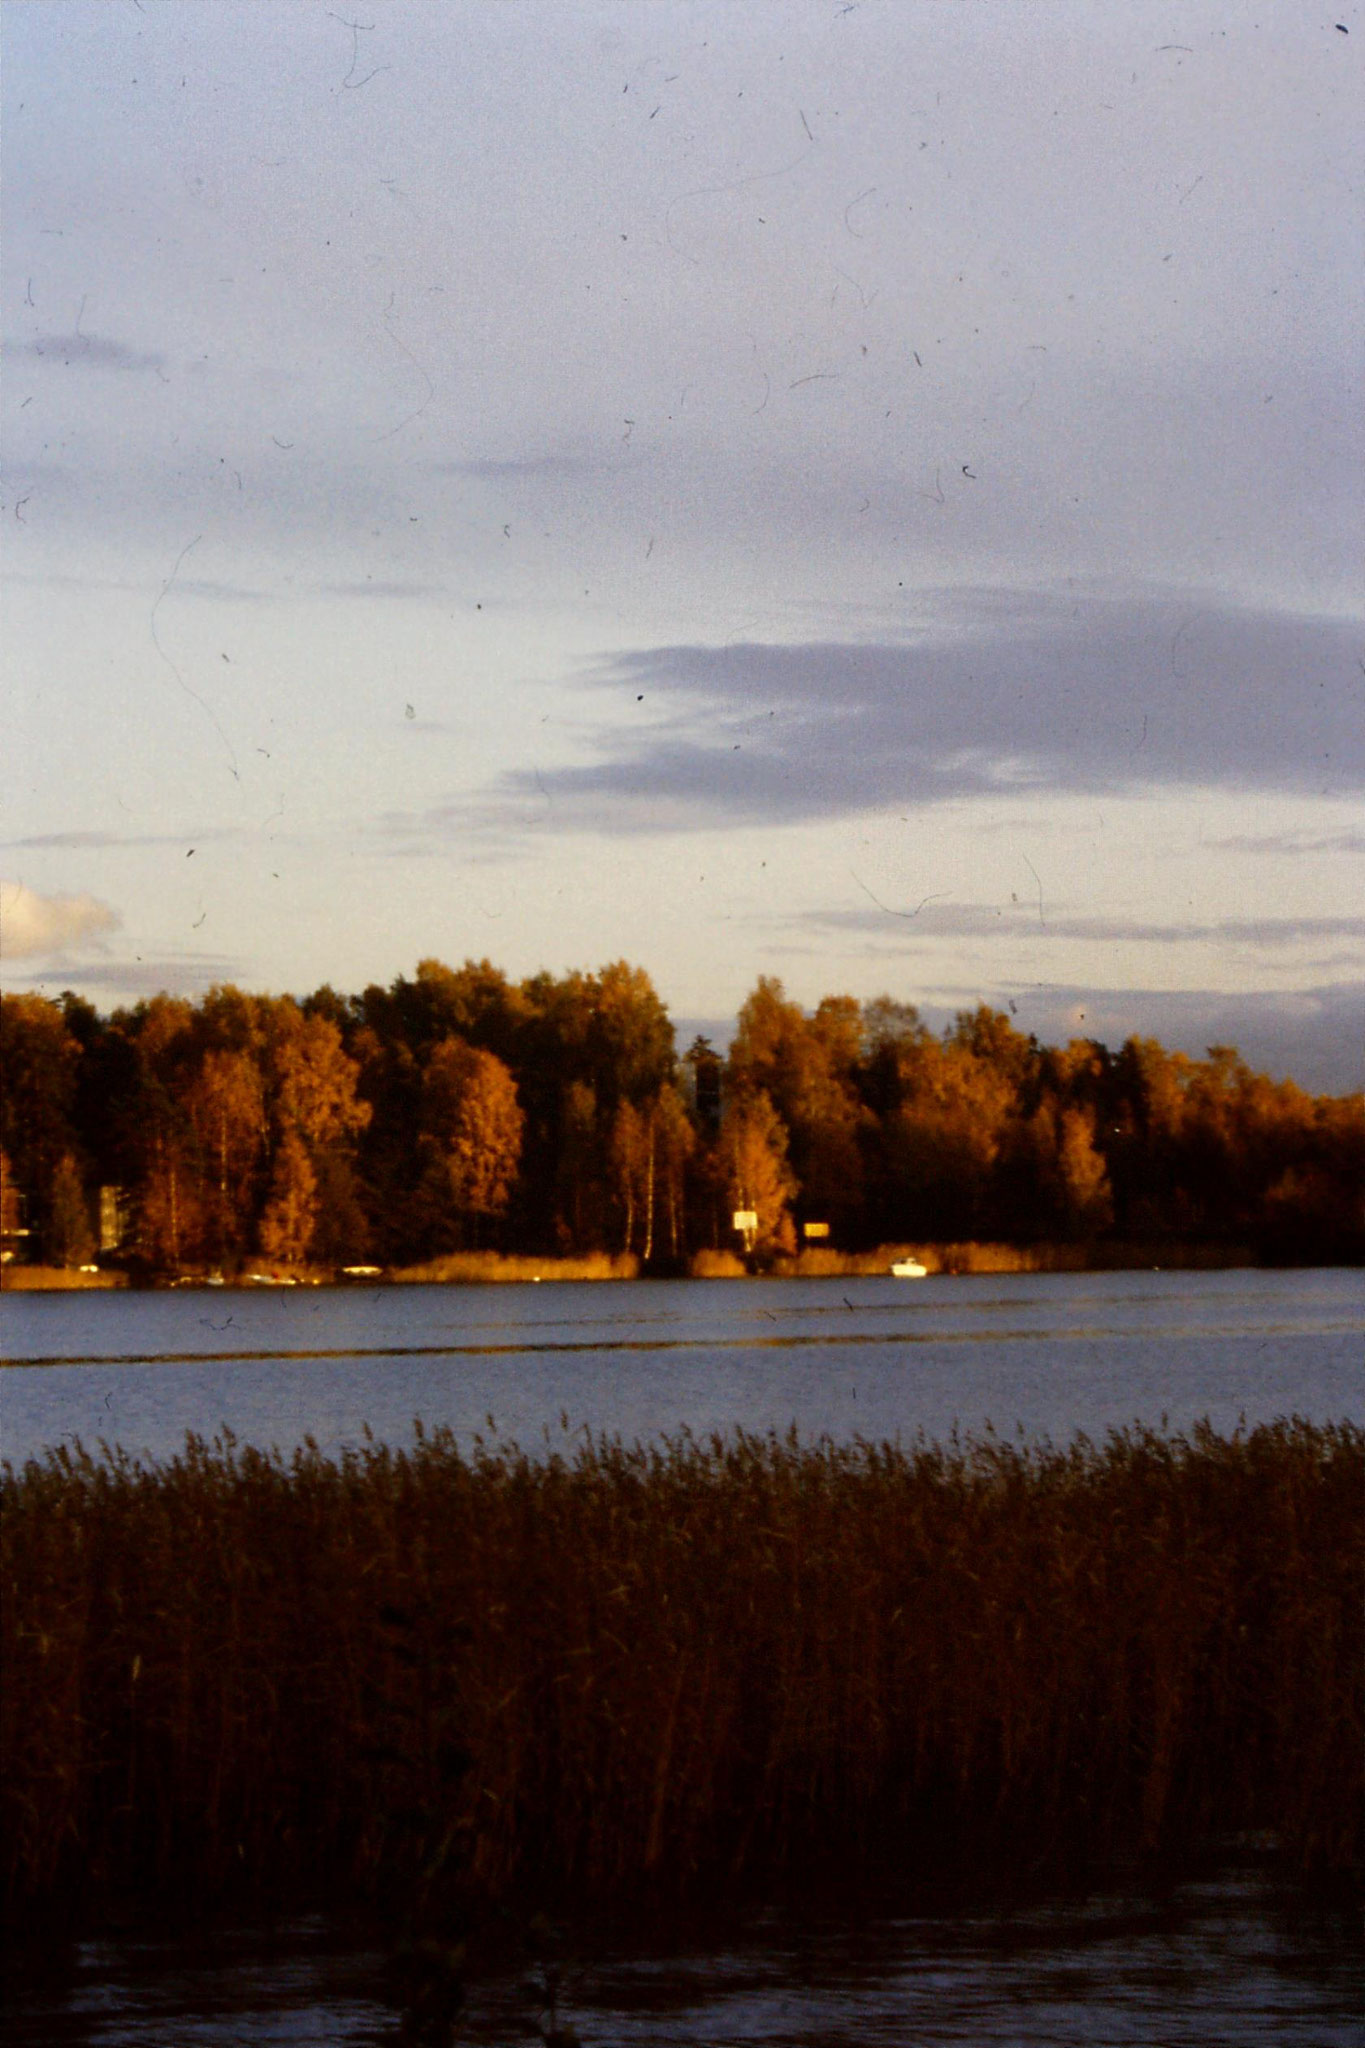 11/10/1988: 11: view across bay at Otaniemi